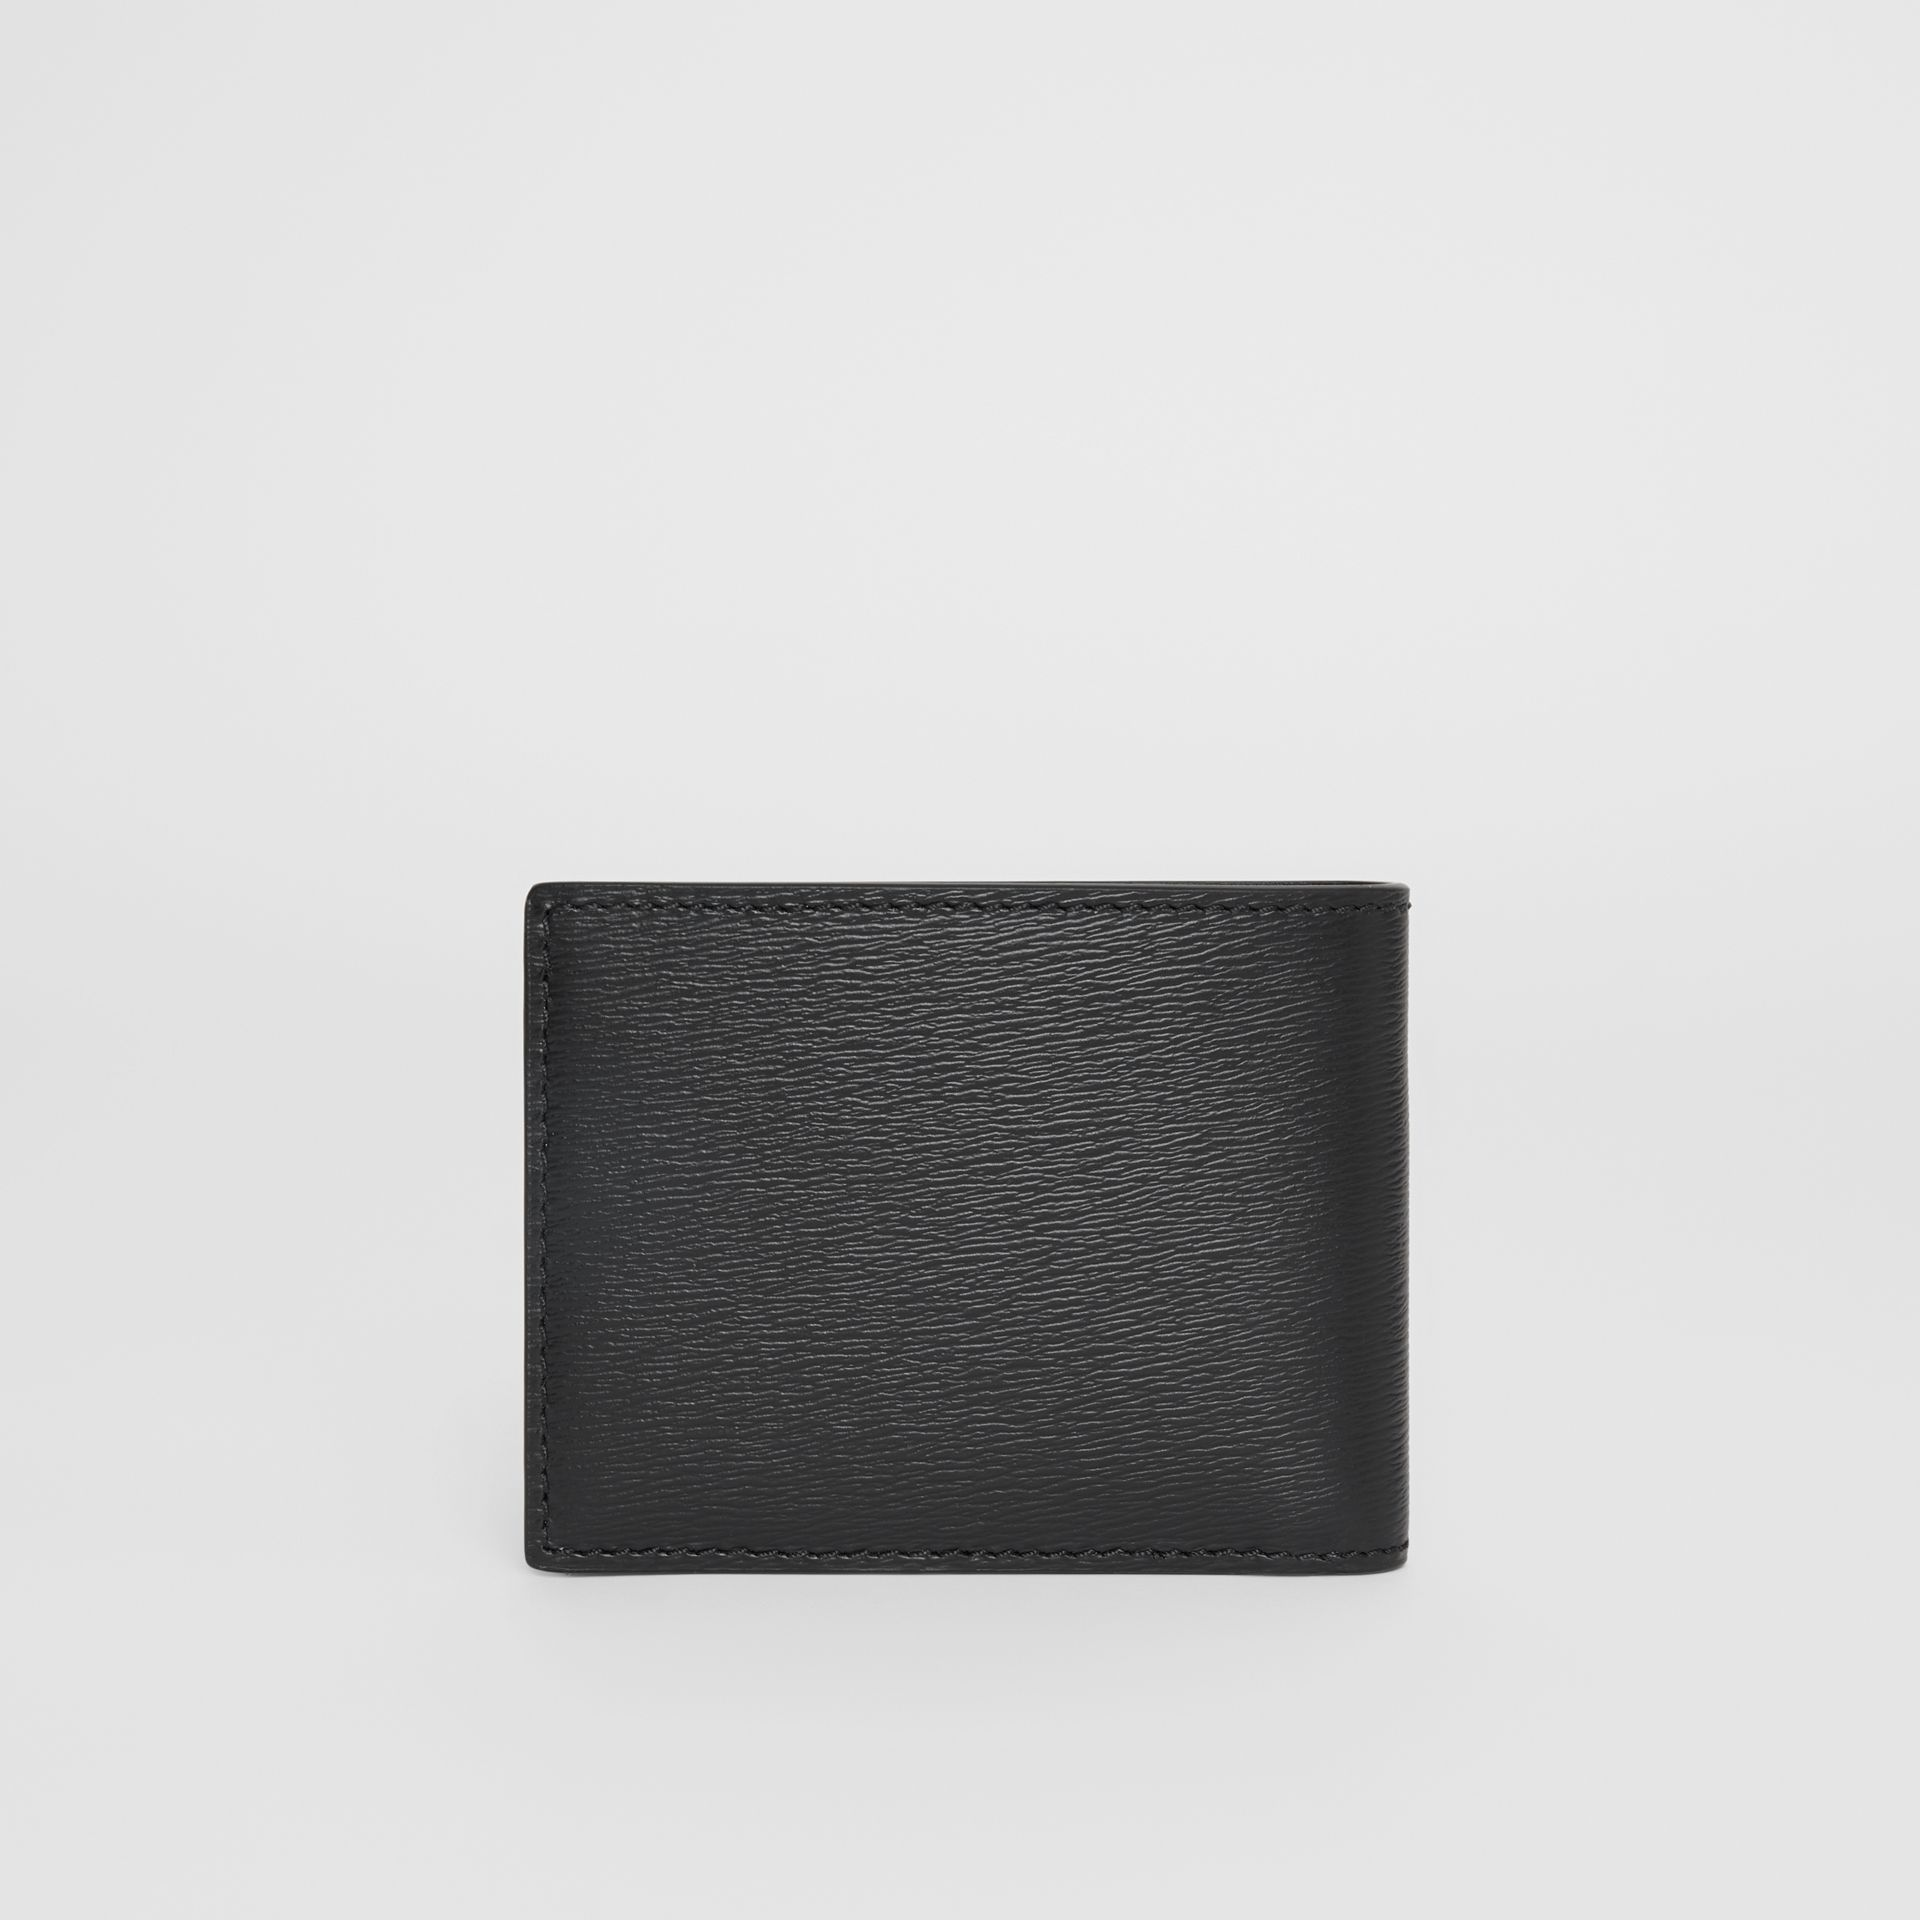 London Leather Bifold Wallet in Black - Men | Burberry Australia - gallery image 4